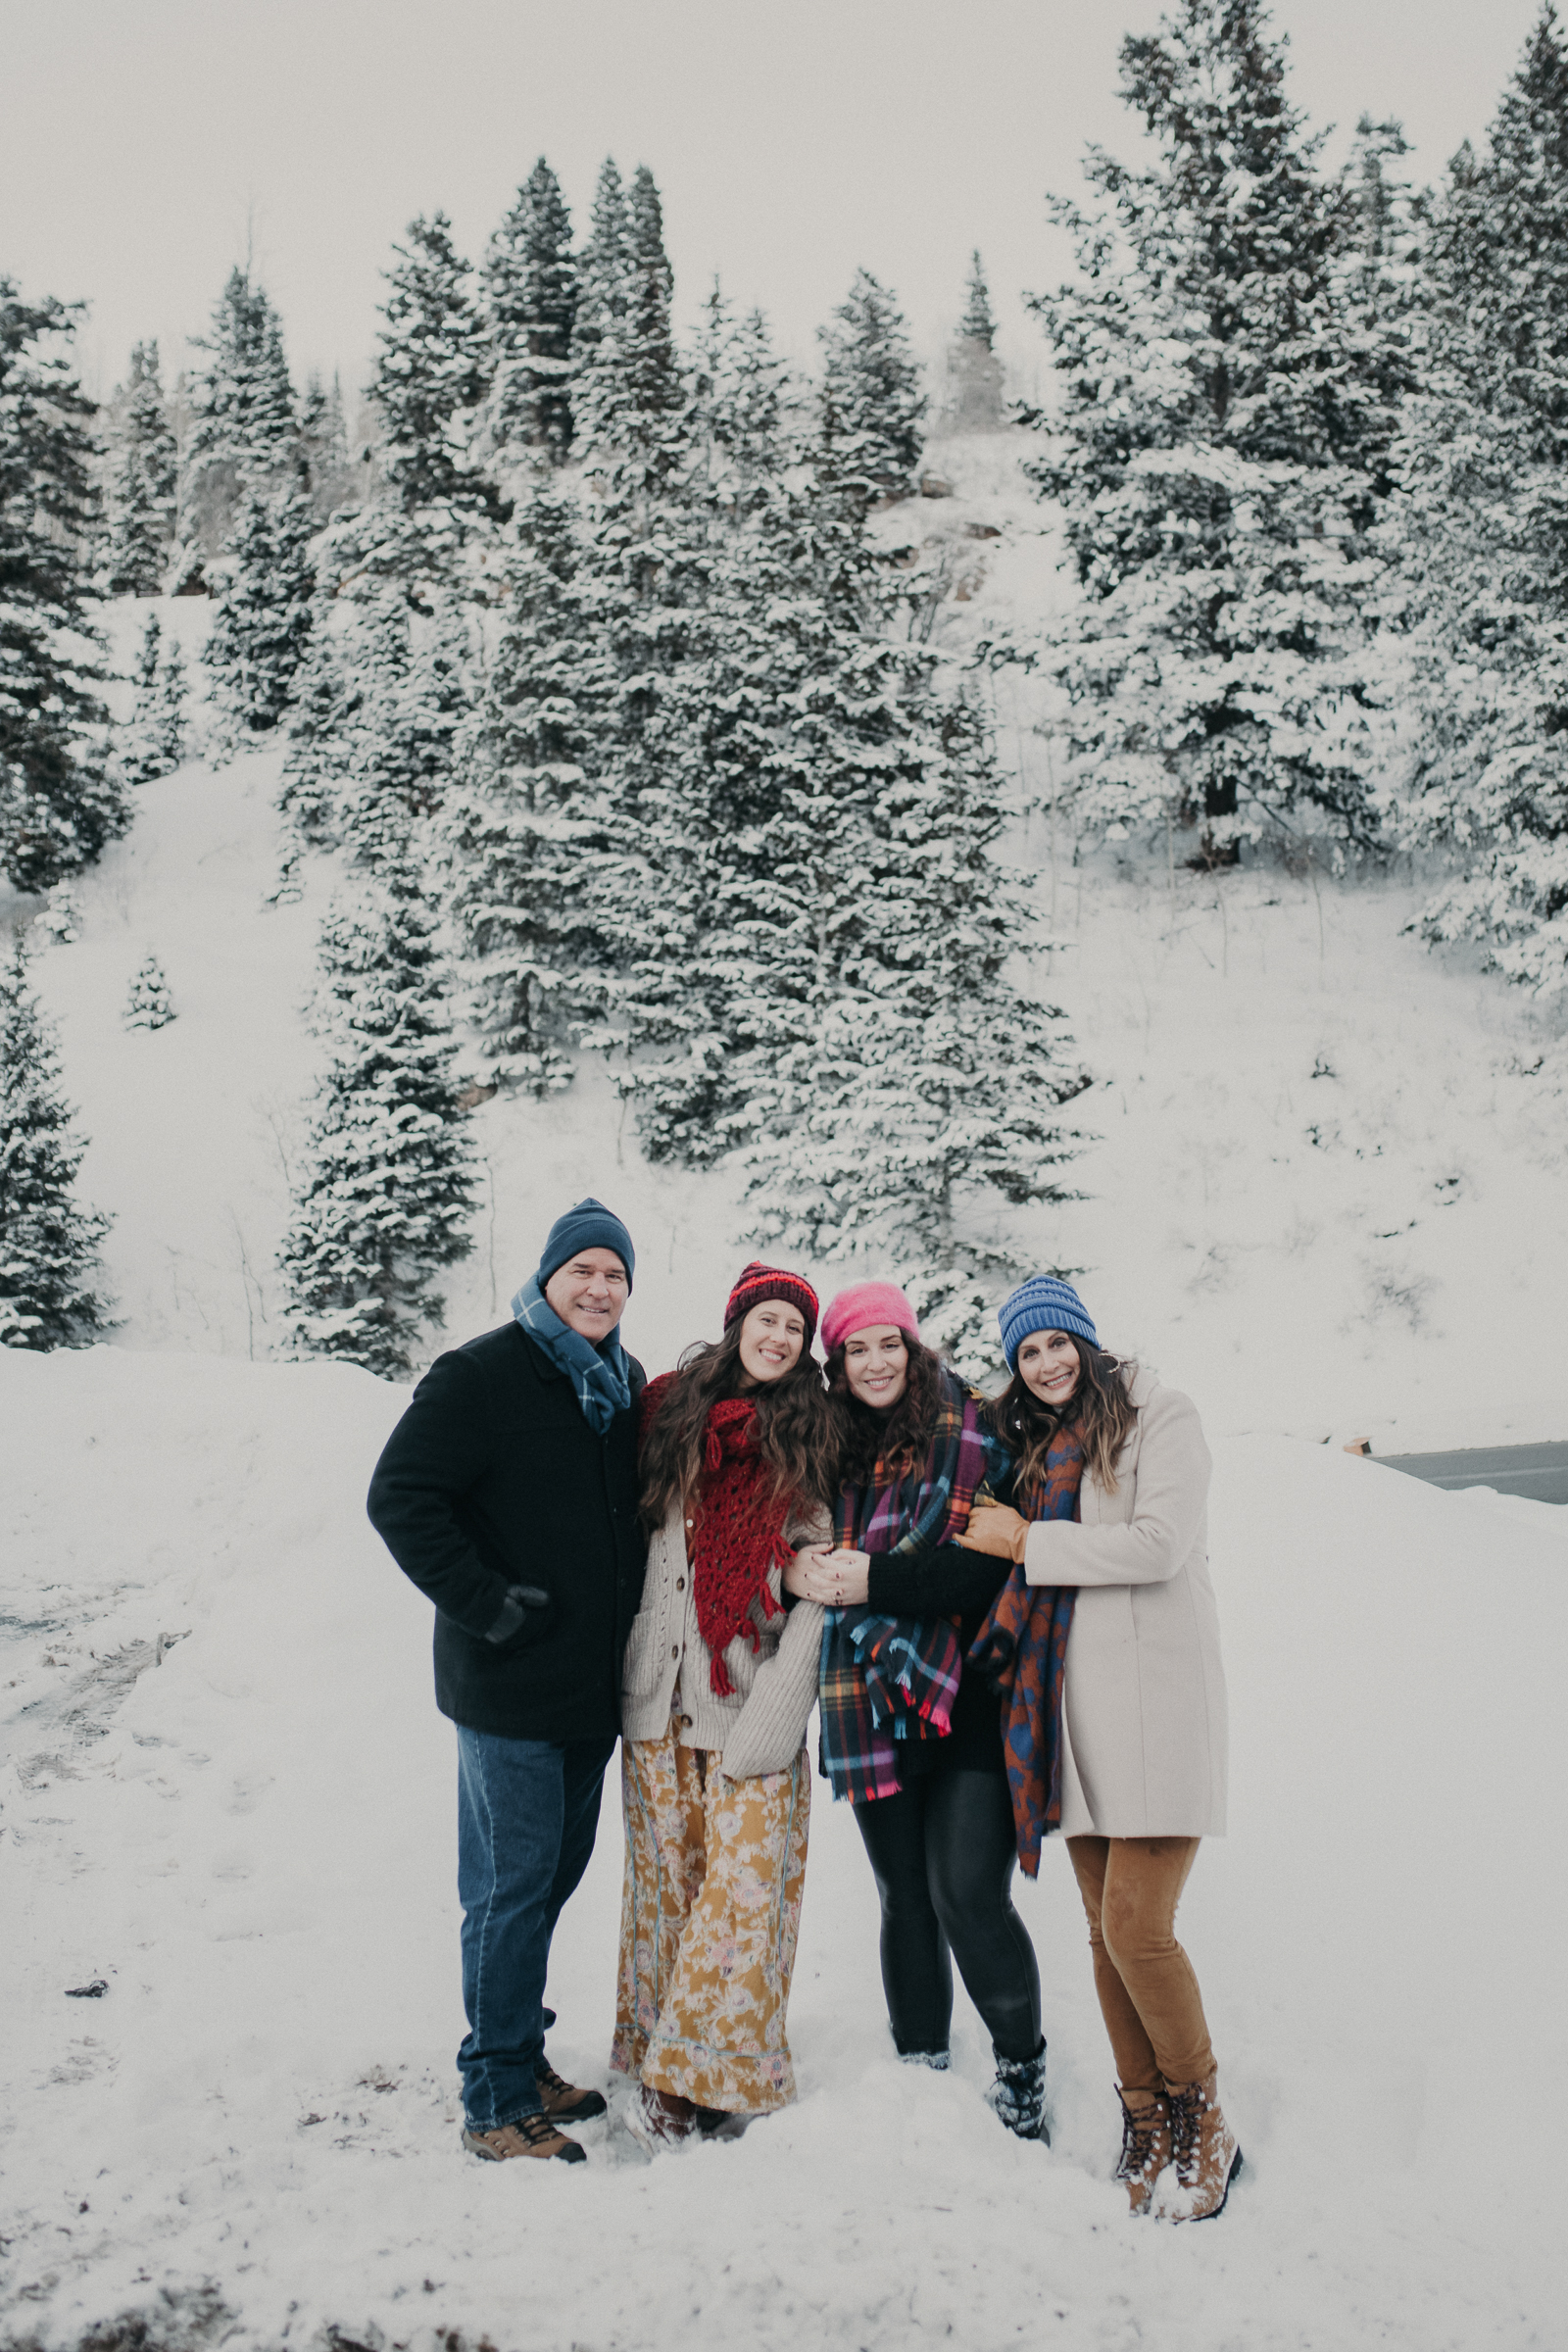 Extended family in snowy mountains